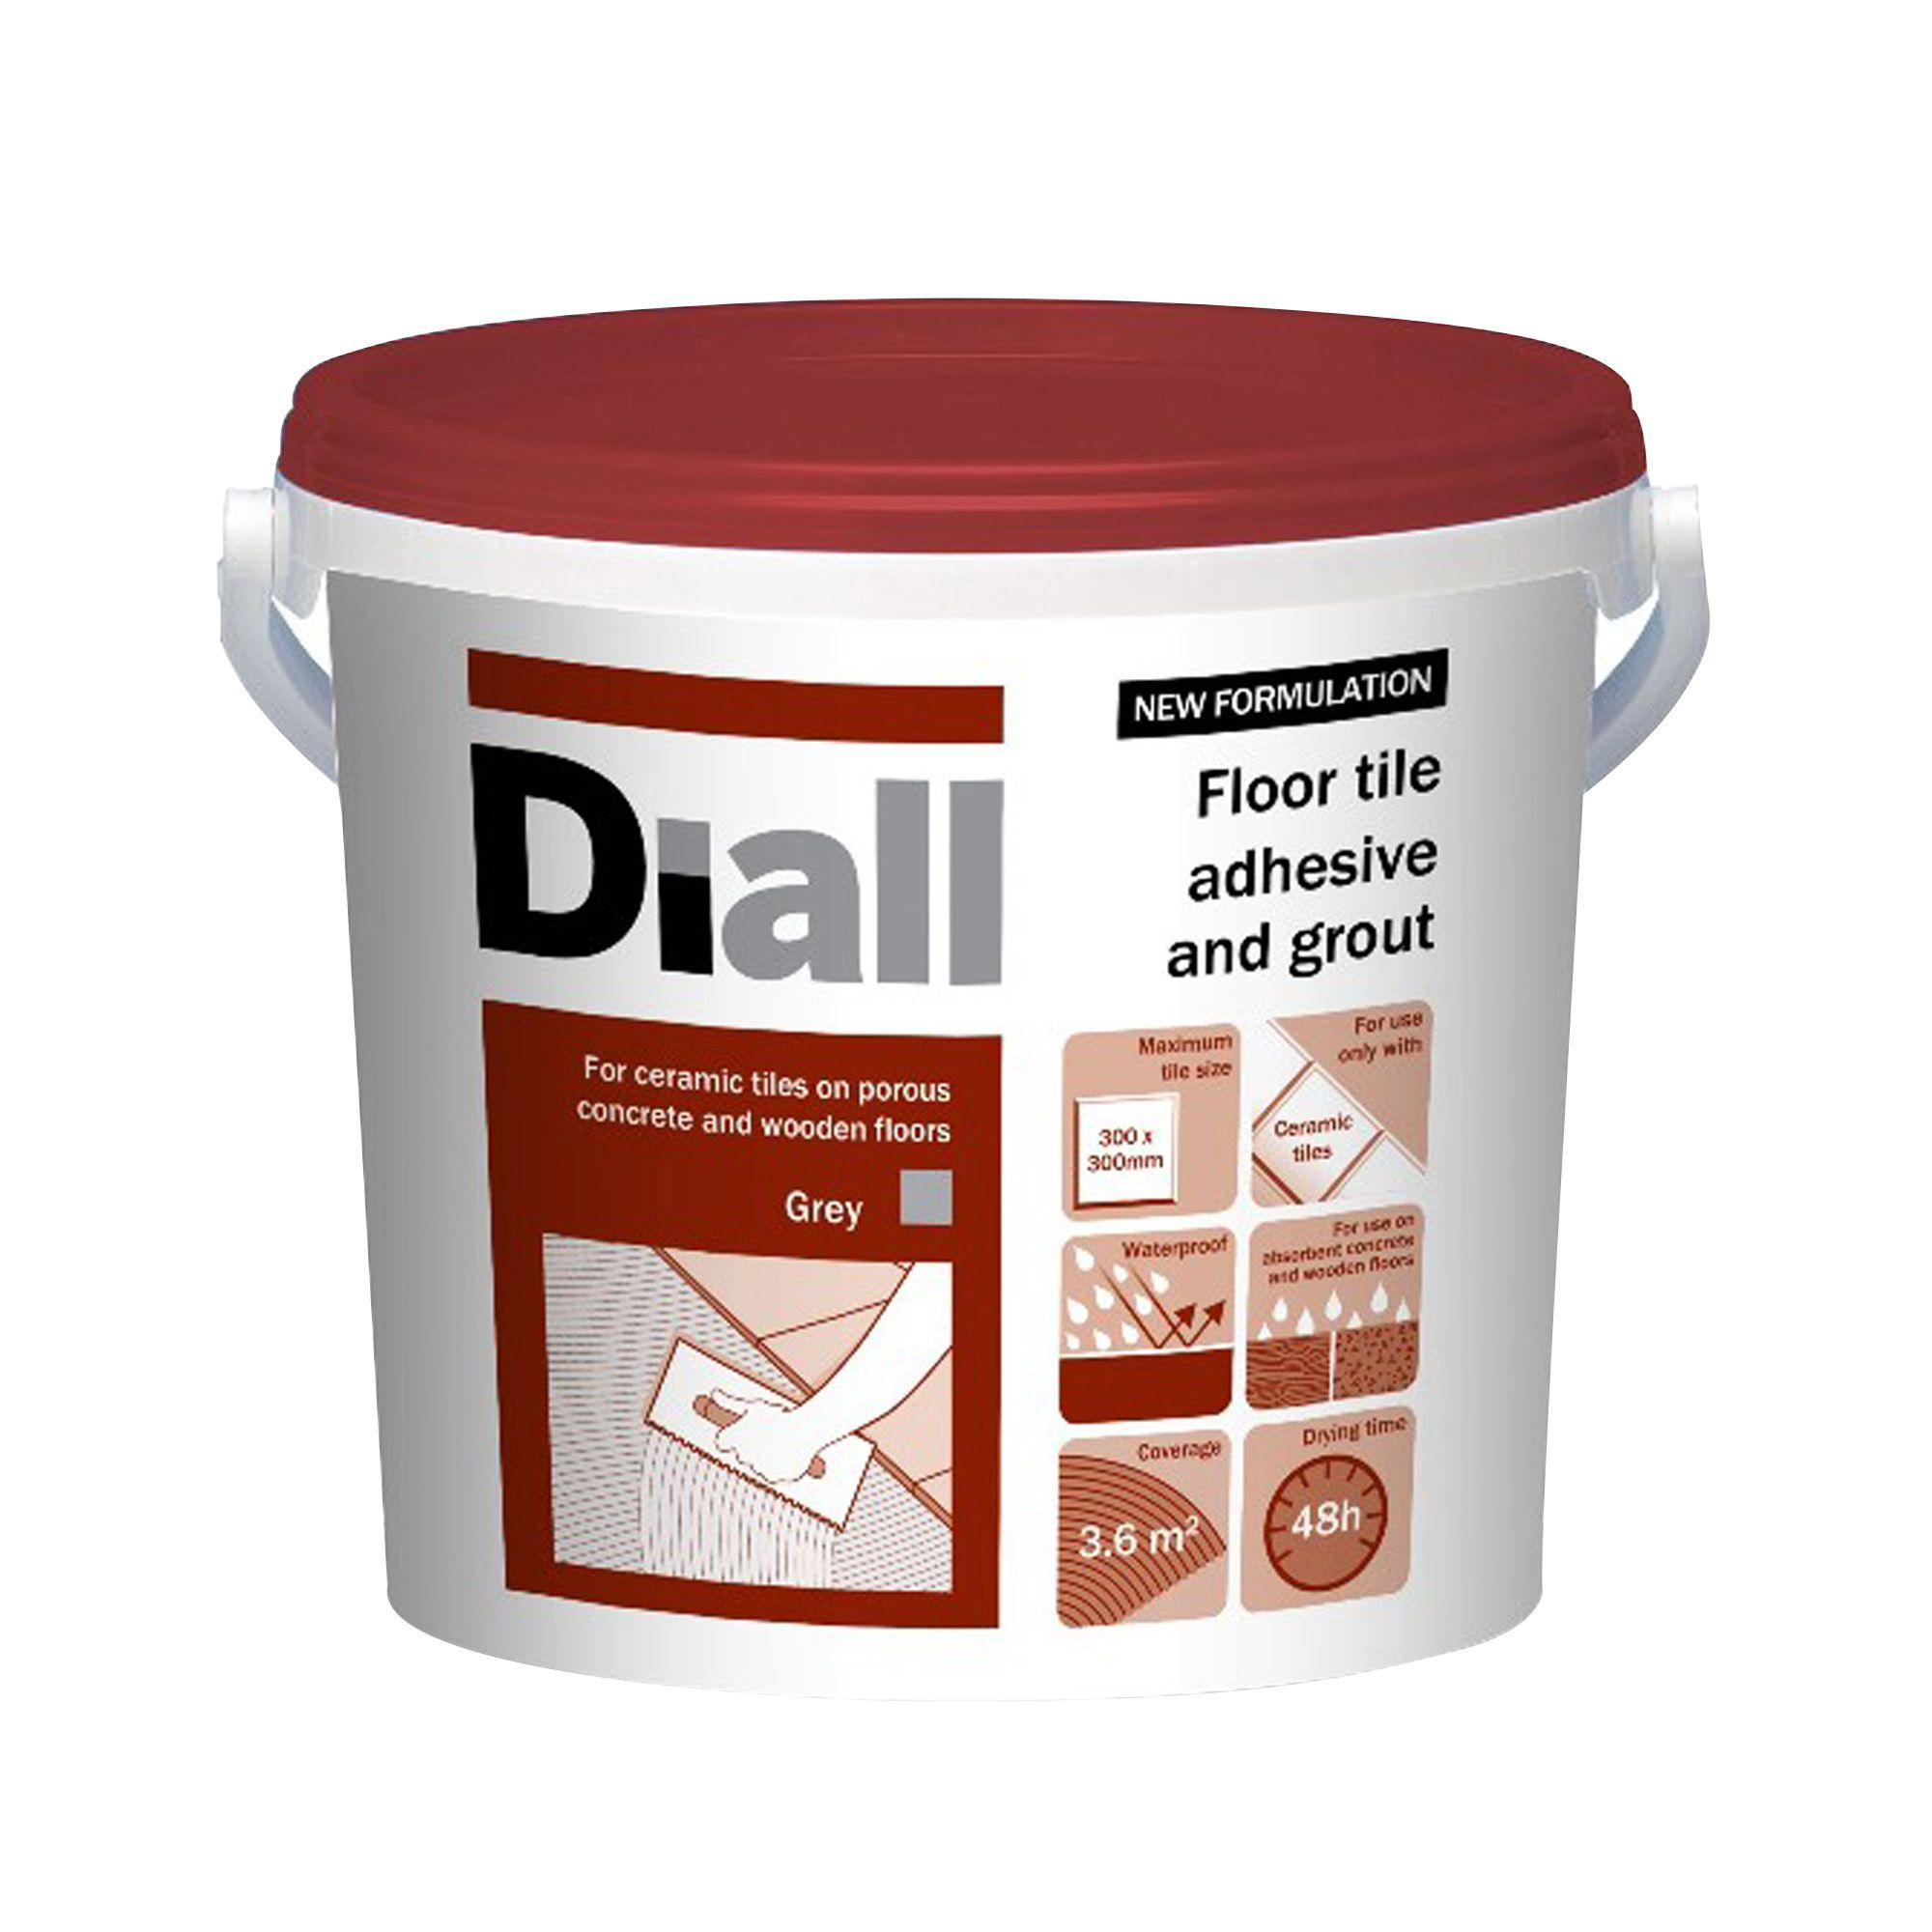 Diall Ready To Use Floor Tile Adhesive & Grout, Grey 14.6kg